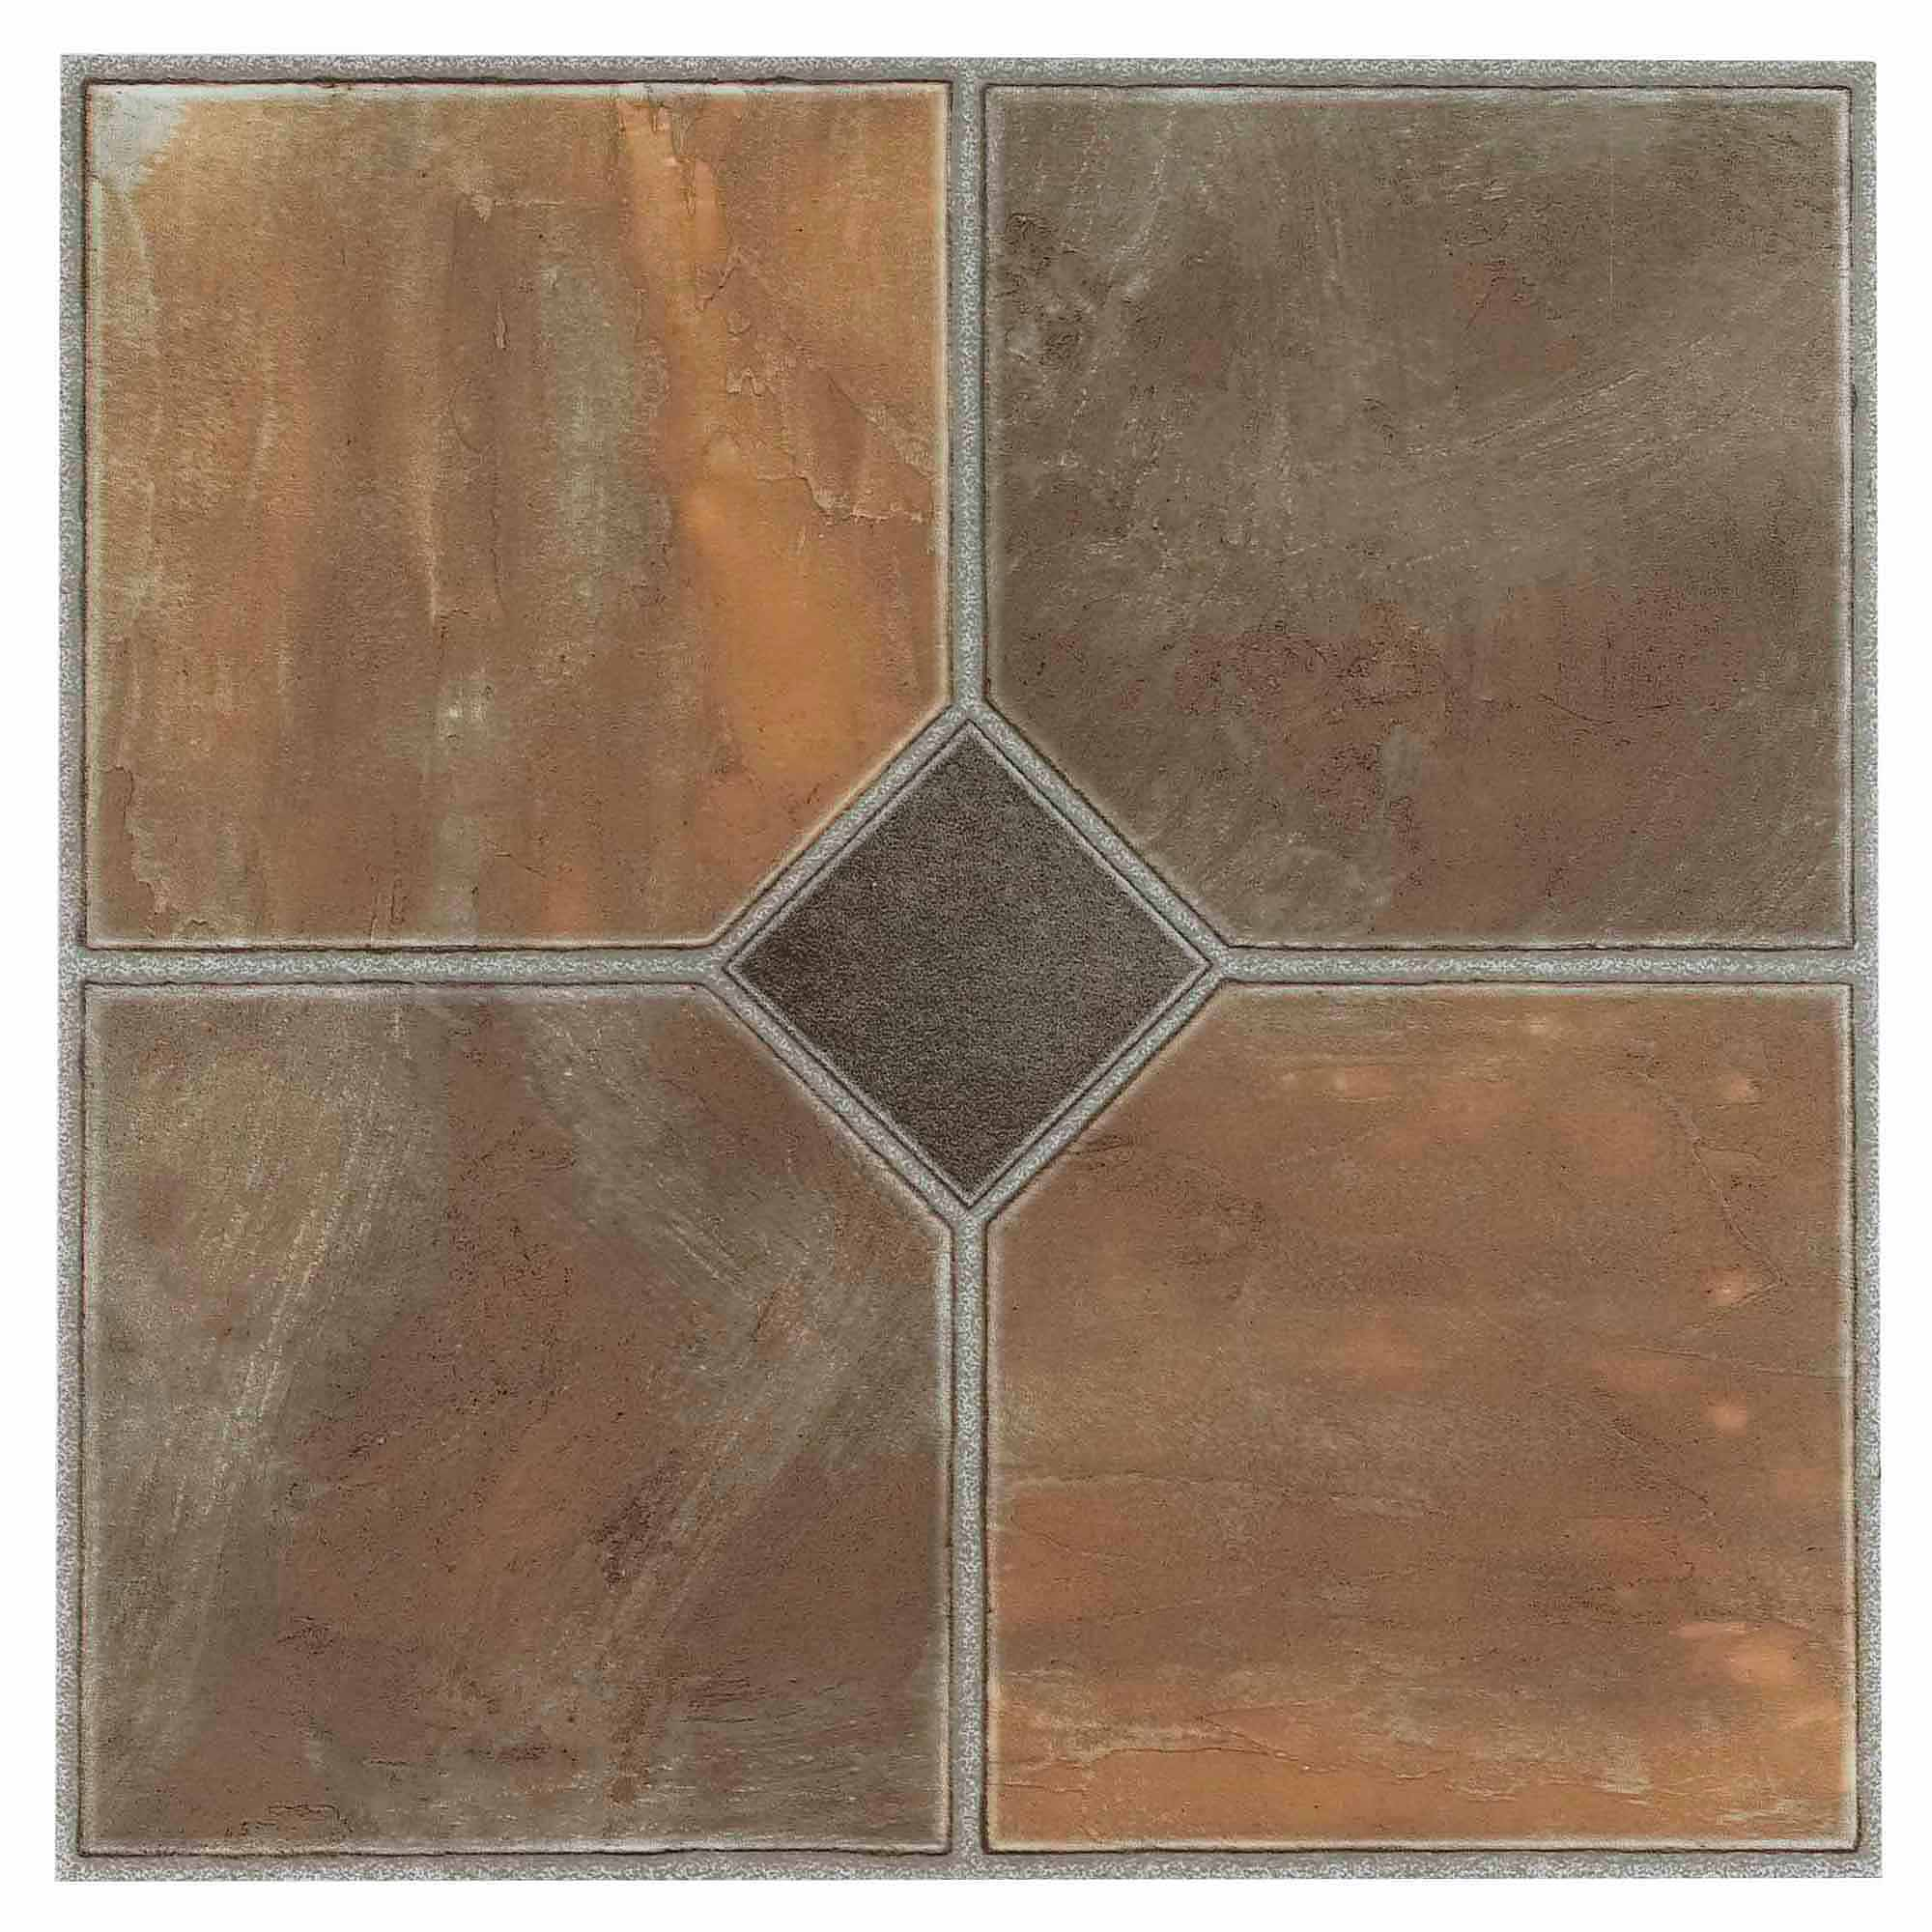 Nexus rustic slate 12x12 self adhesive vinyl floor tile 20 tiles nexus rustic slate 12x12 self adhesive vinyl floor tile 20 tiles20 sqft walmart dailygadgetfo Gallery